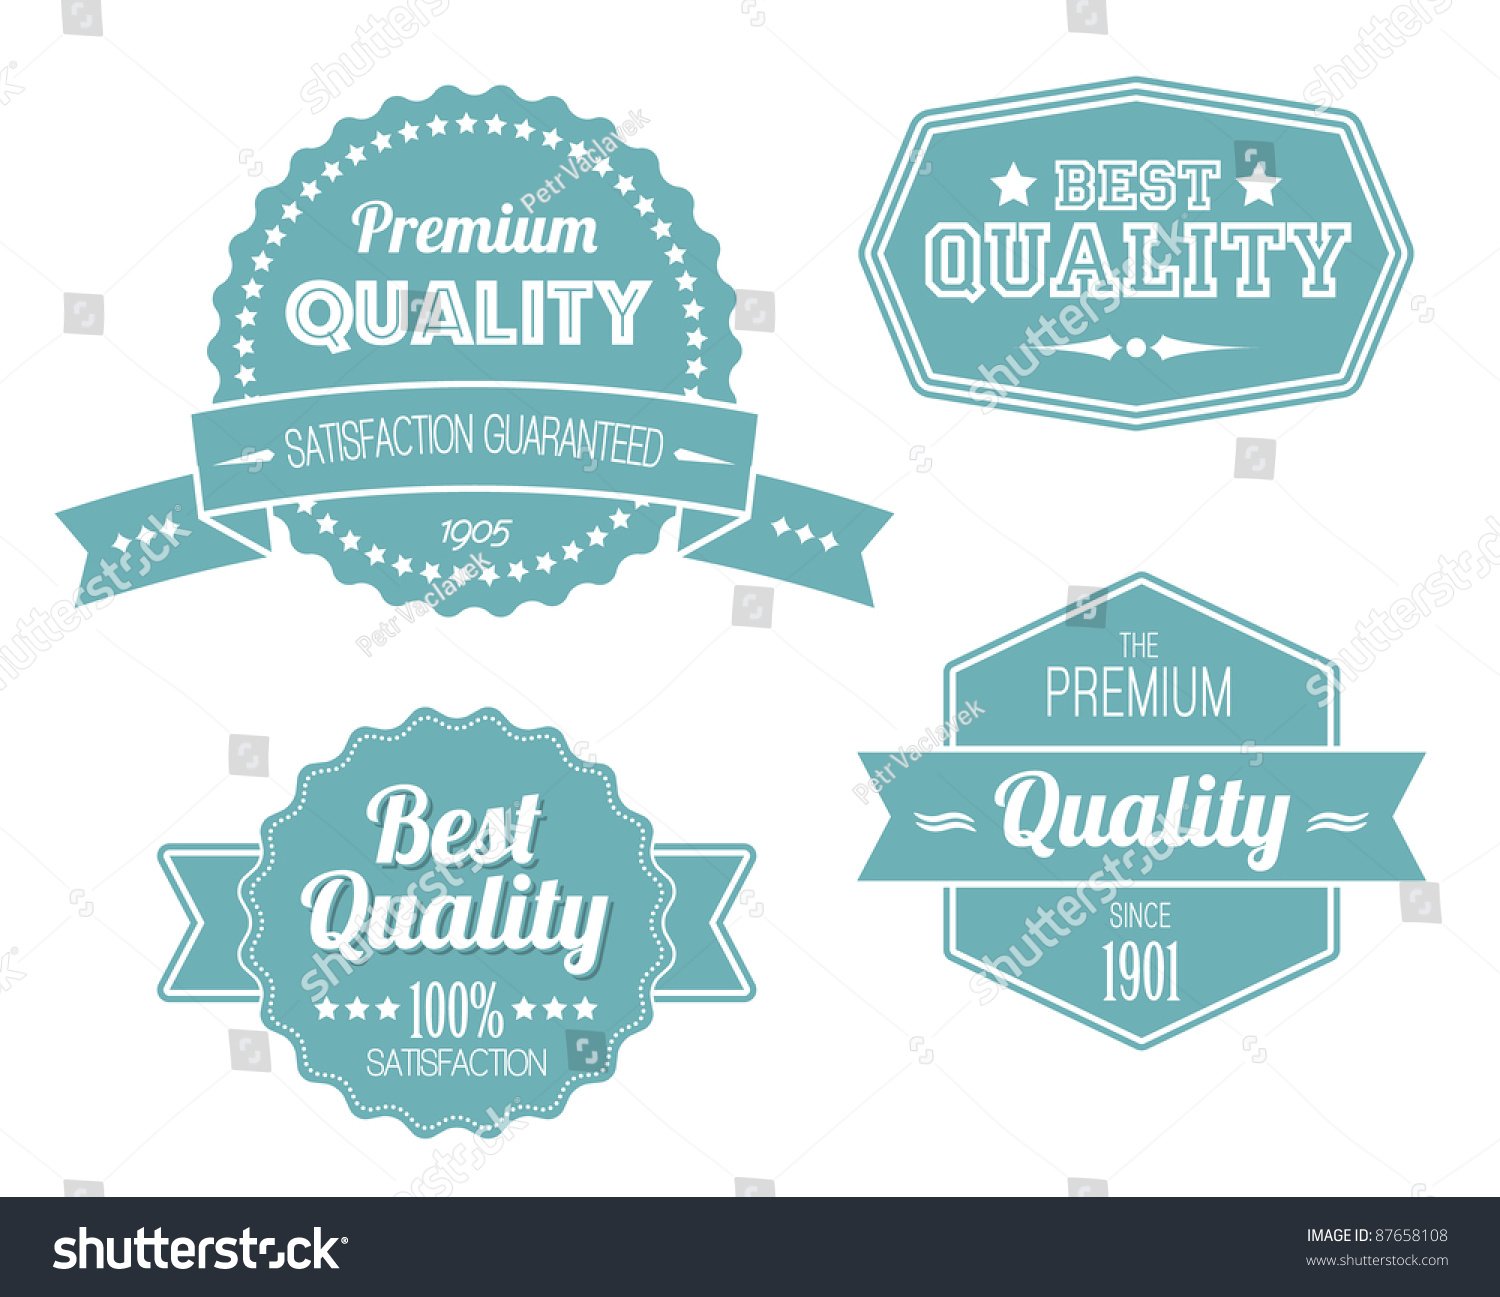 shutterstock2011 retrobadge05